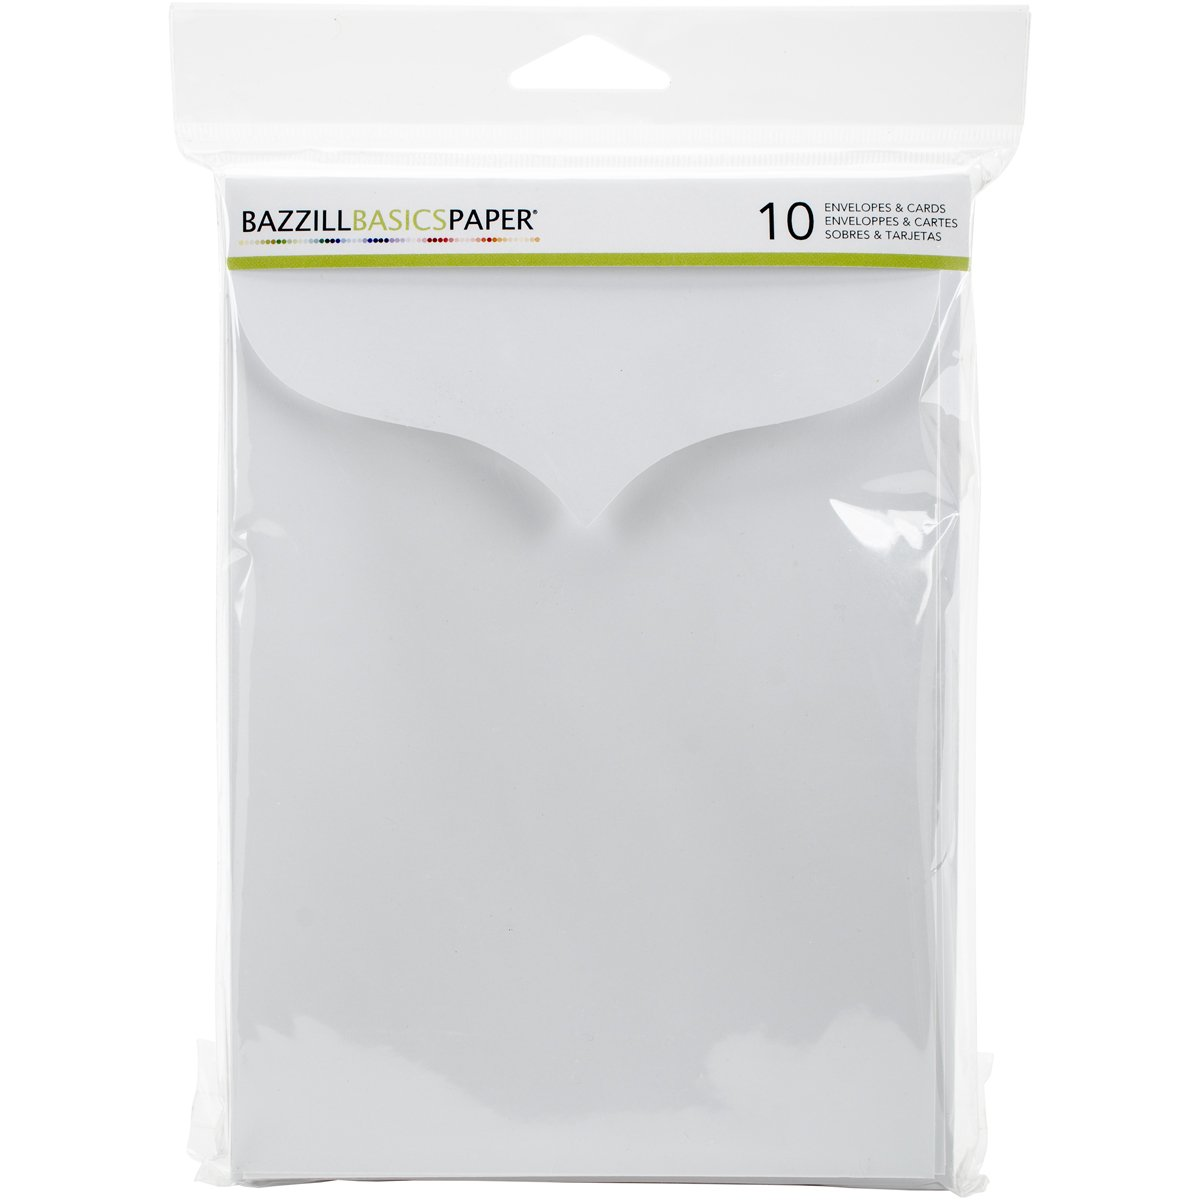 5 x 7 White Scalloped Bazzill Basics Paper 10 Piece American Crafts Cardmaking Bazzill Cards and Envelopes